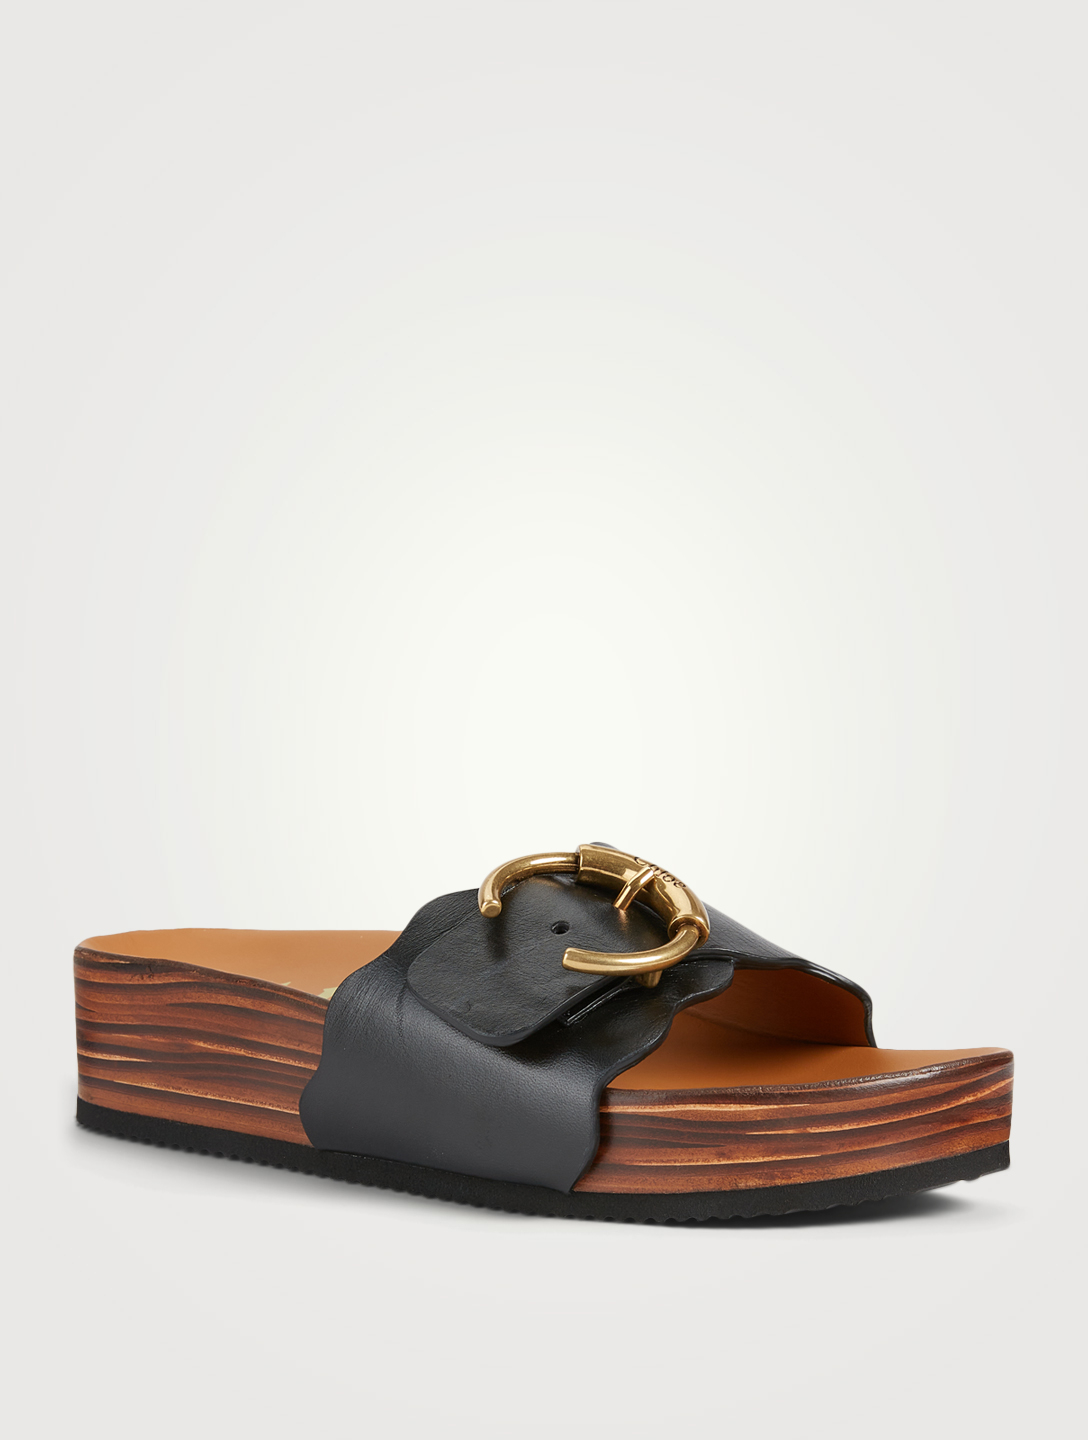 CHLOÉ Lauren Leather Flatform Mule Sandals Women's Black